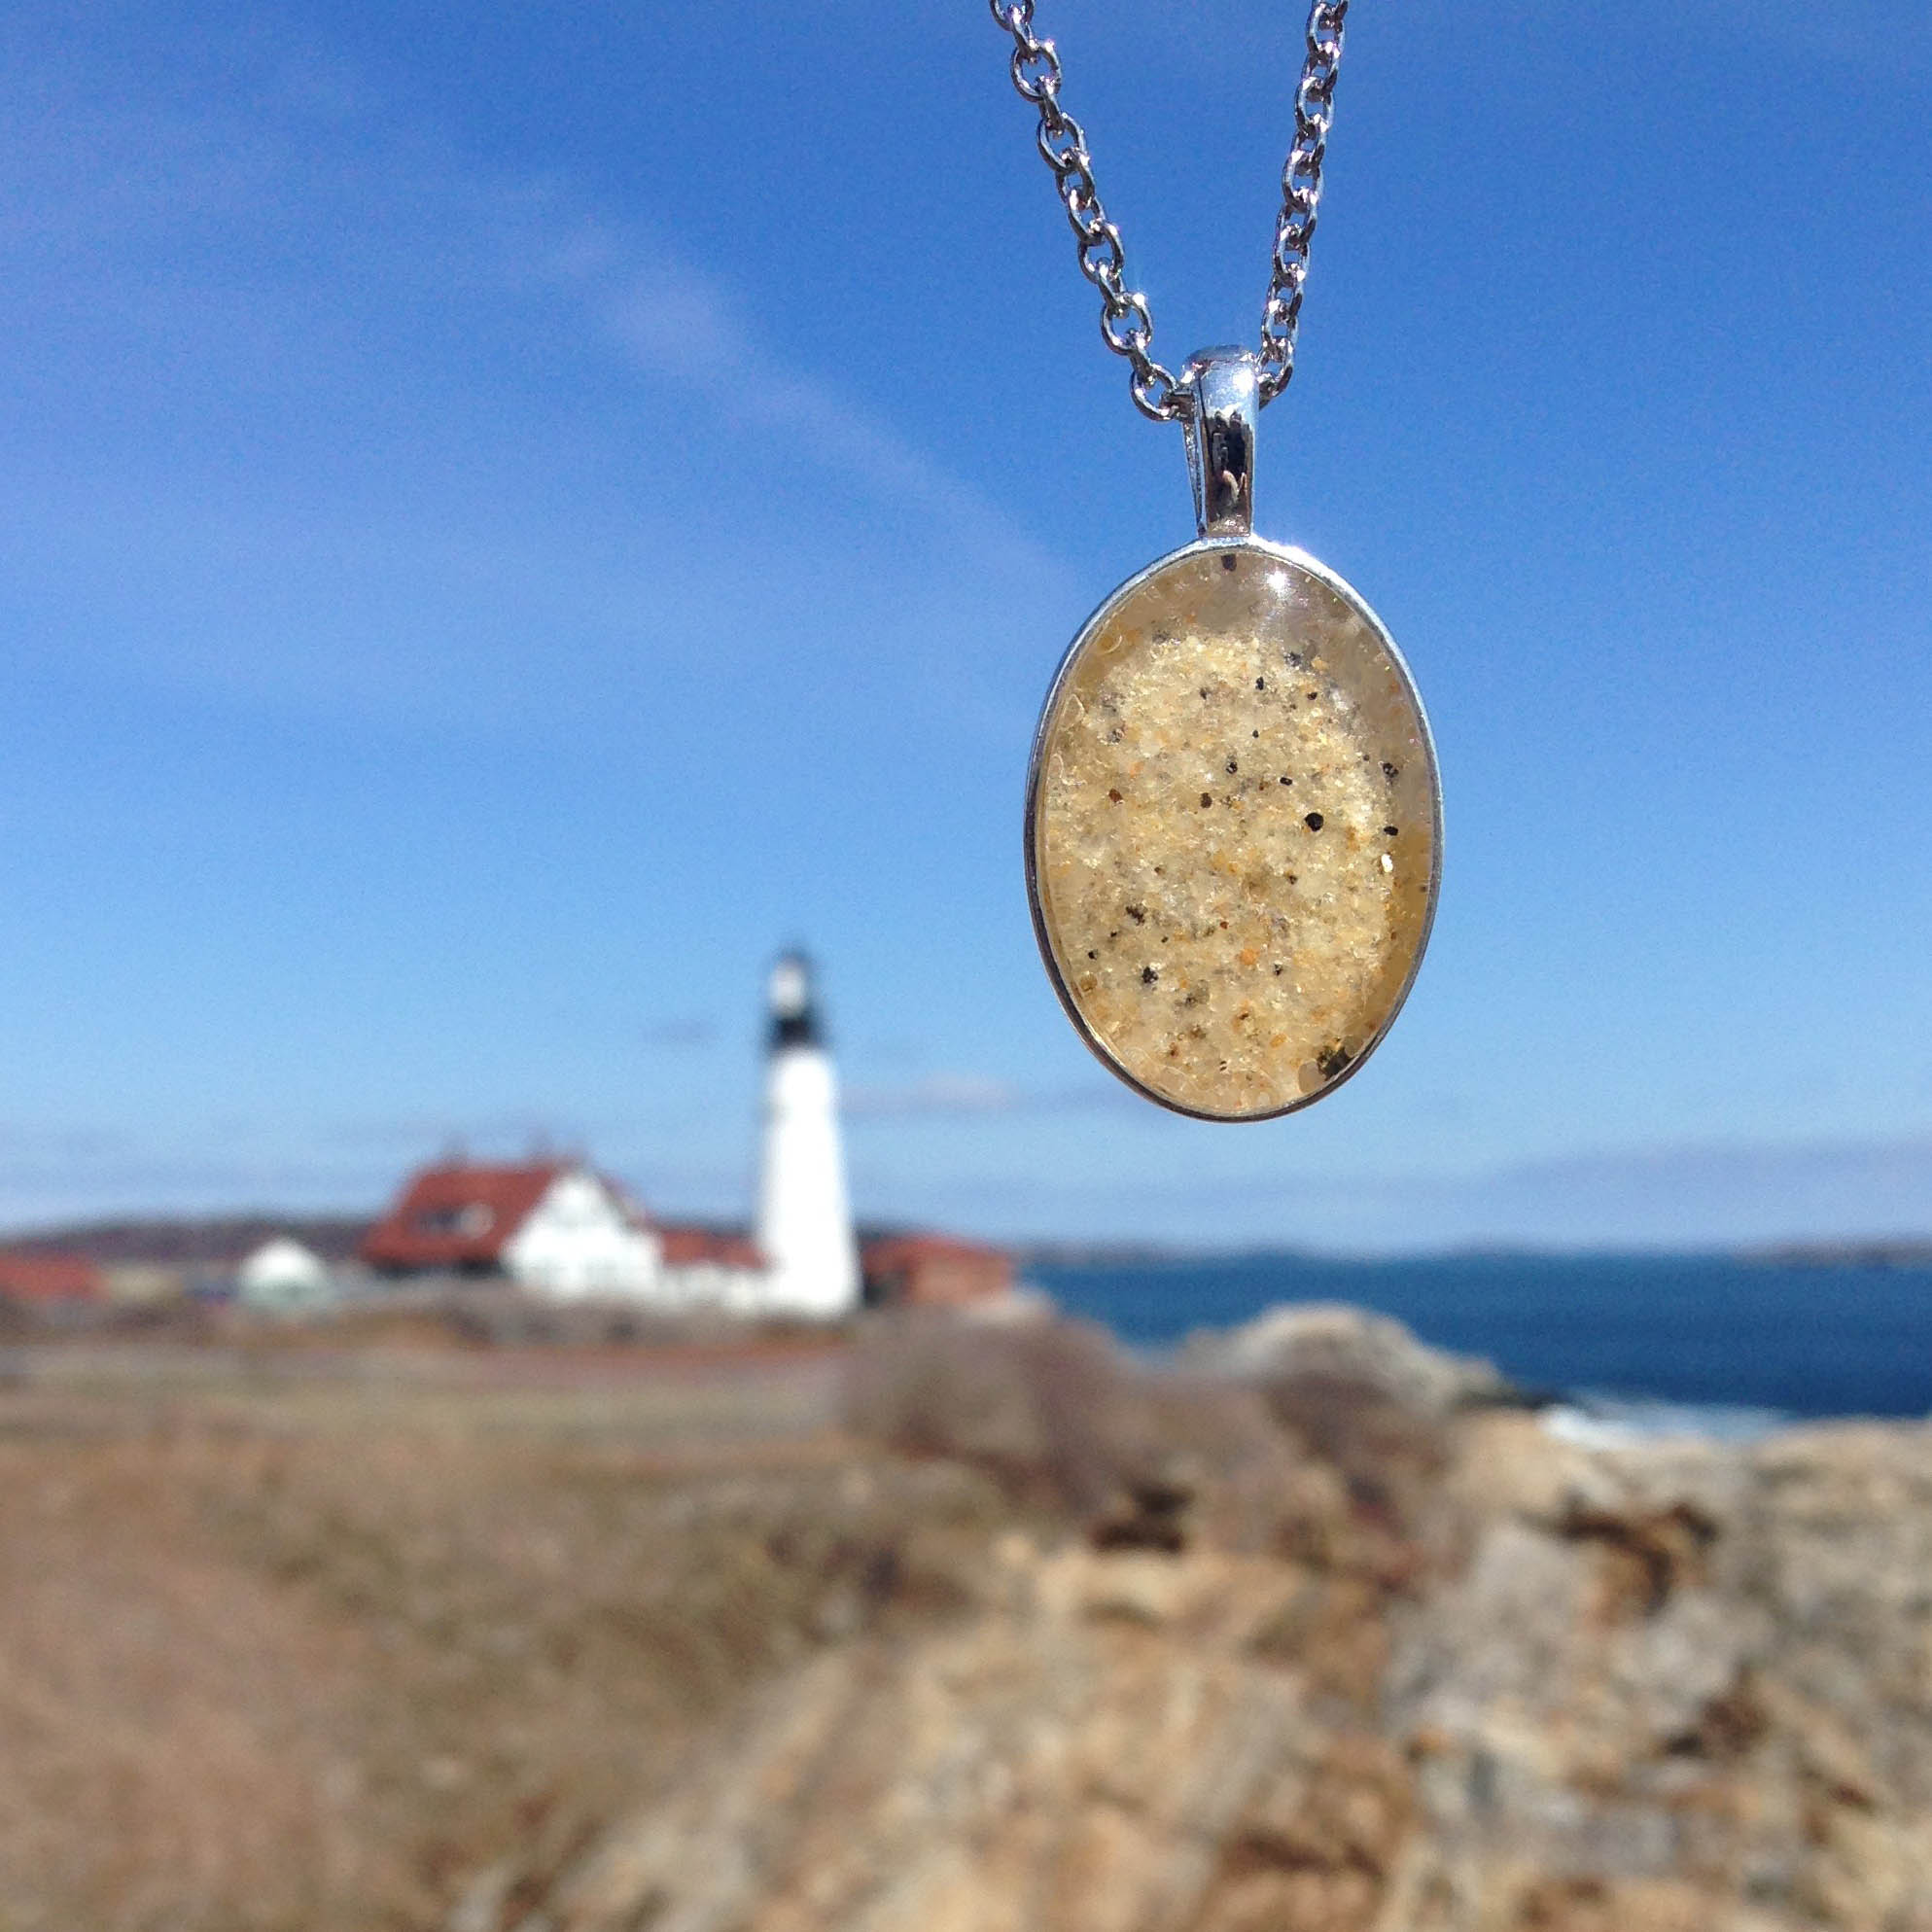 sand jewelry portland headlight necklace.jpg